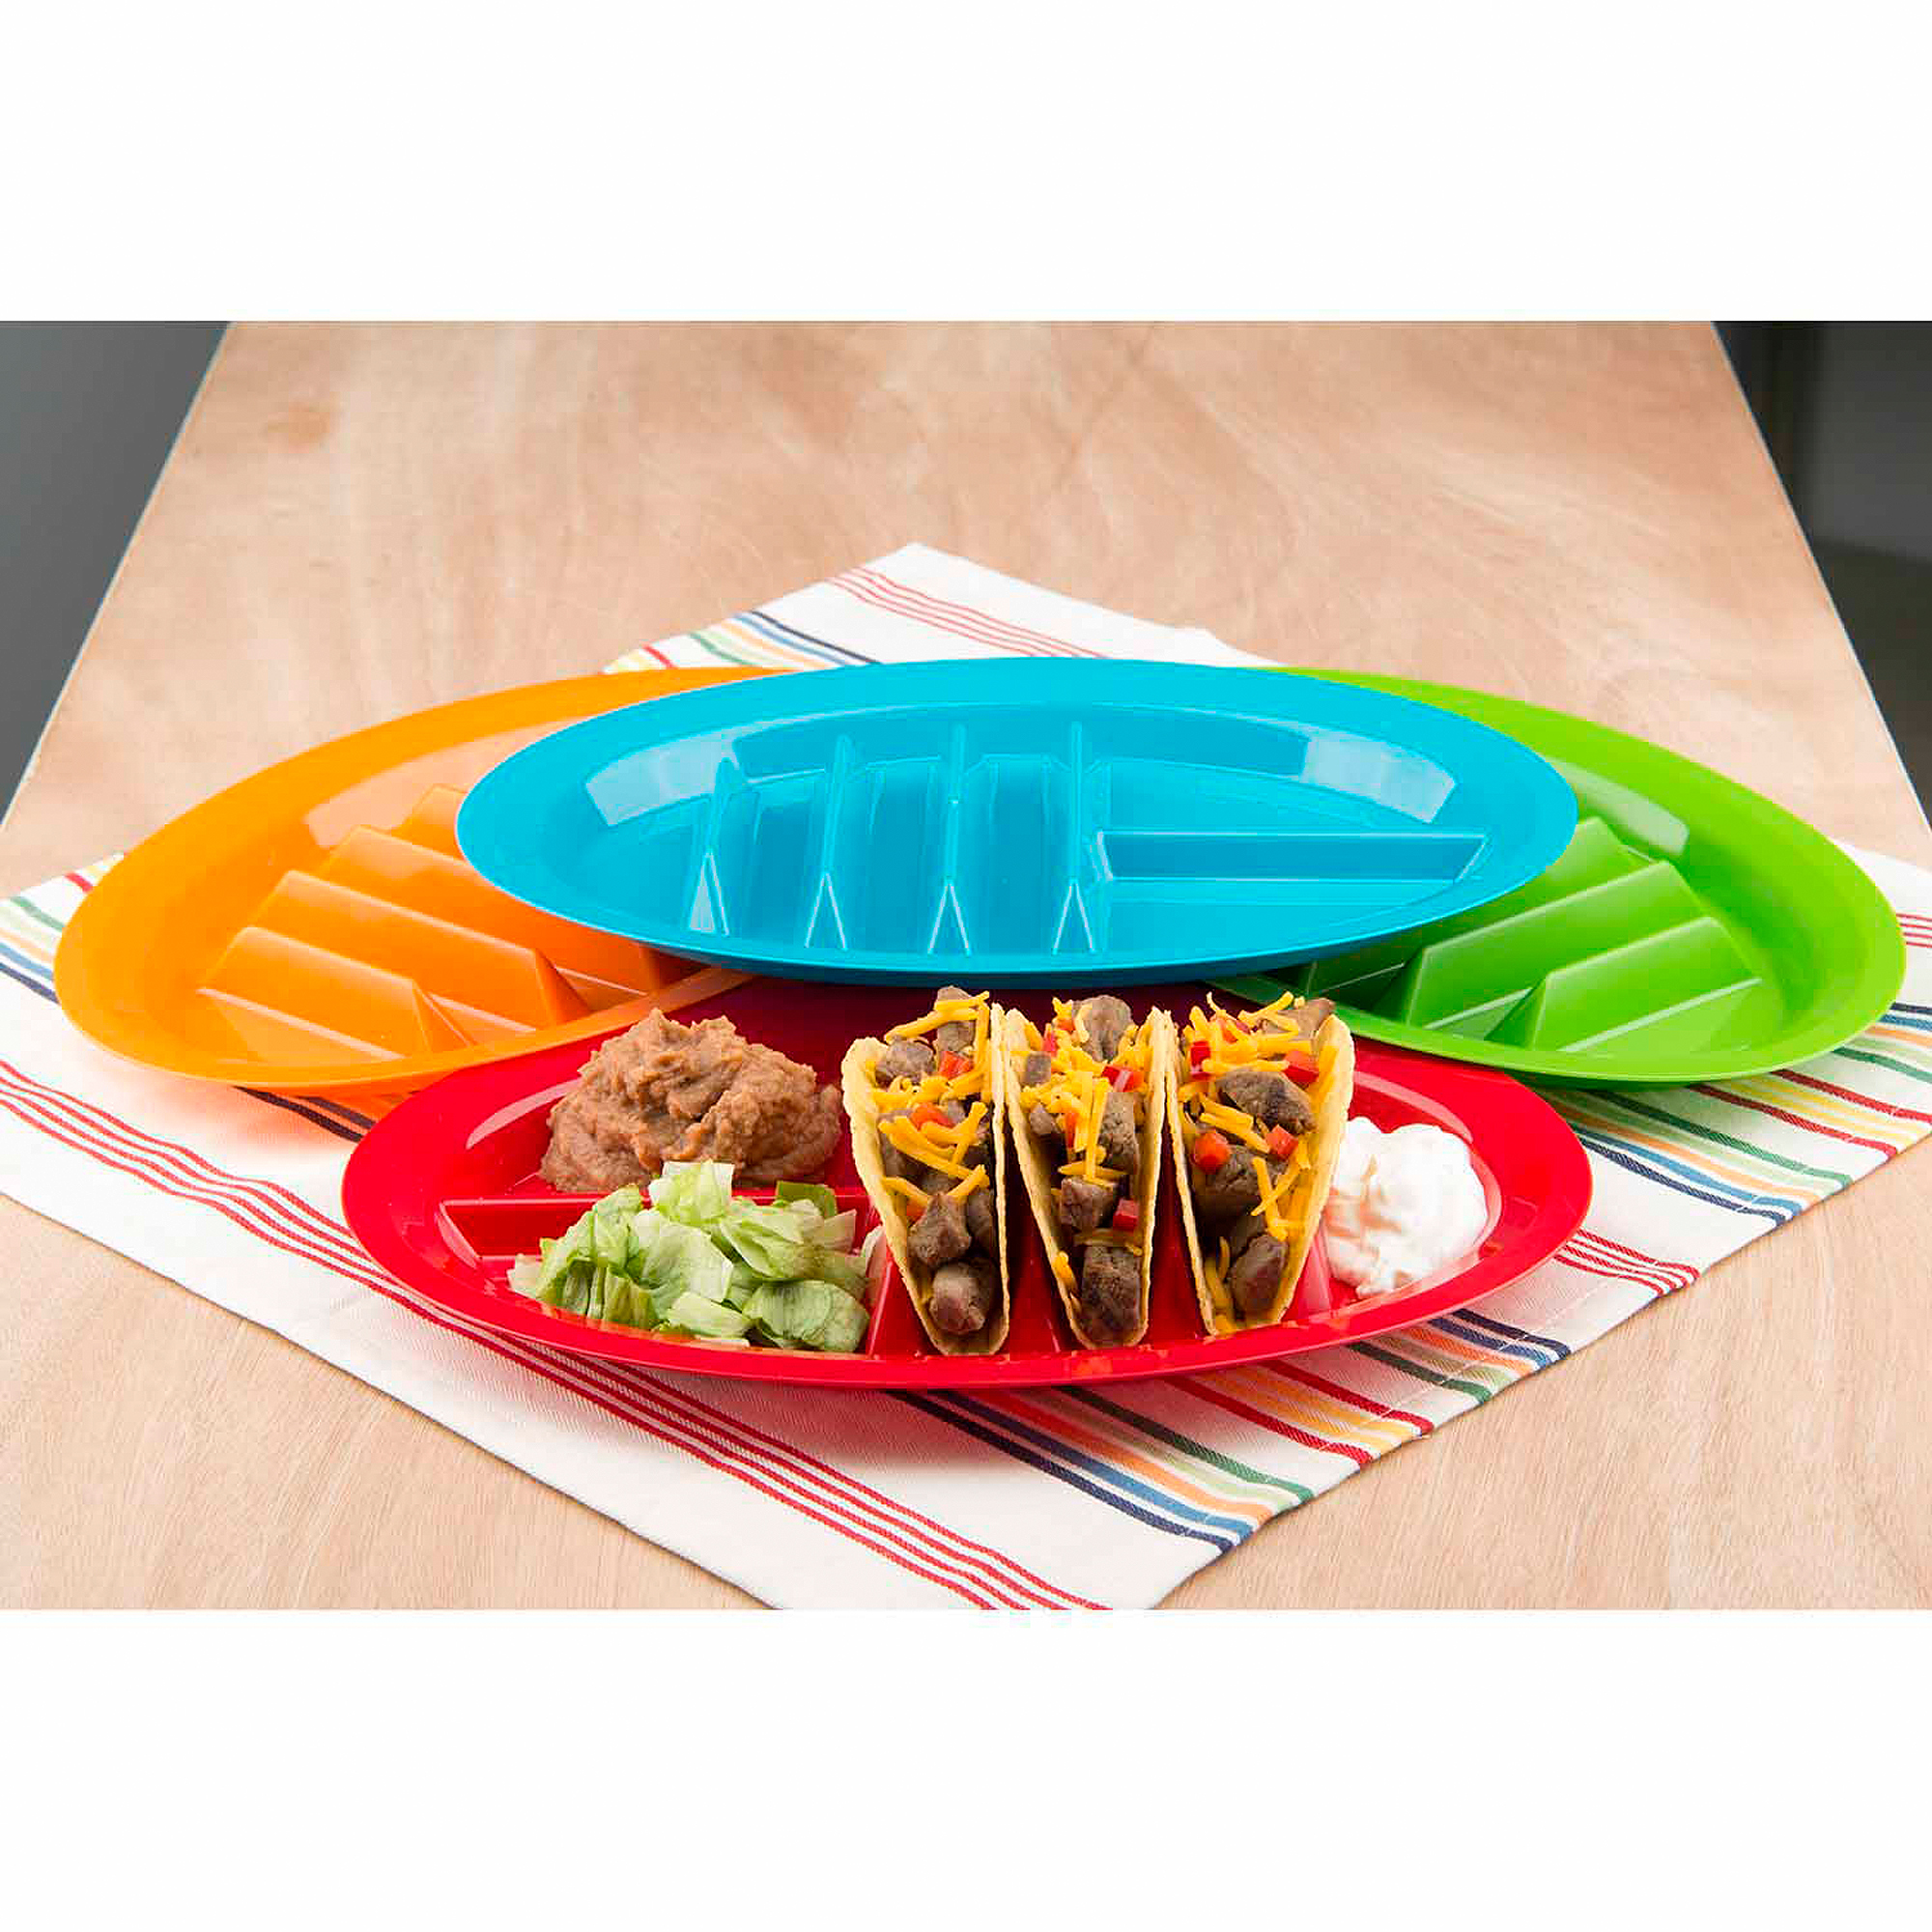 Jarratt Industries The Taco Plate, Fiesta, Set of 4